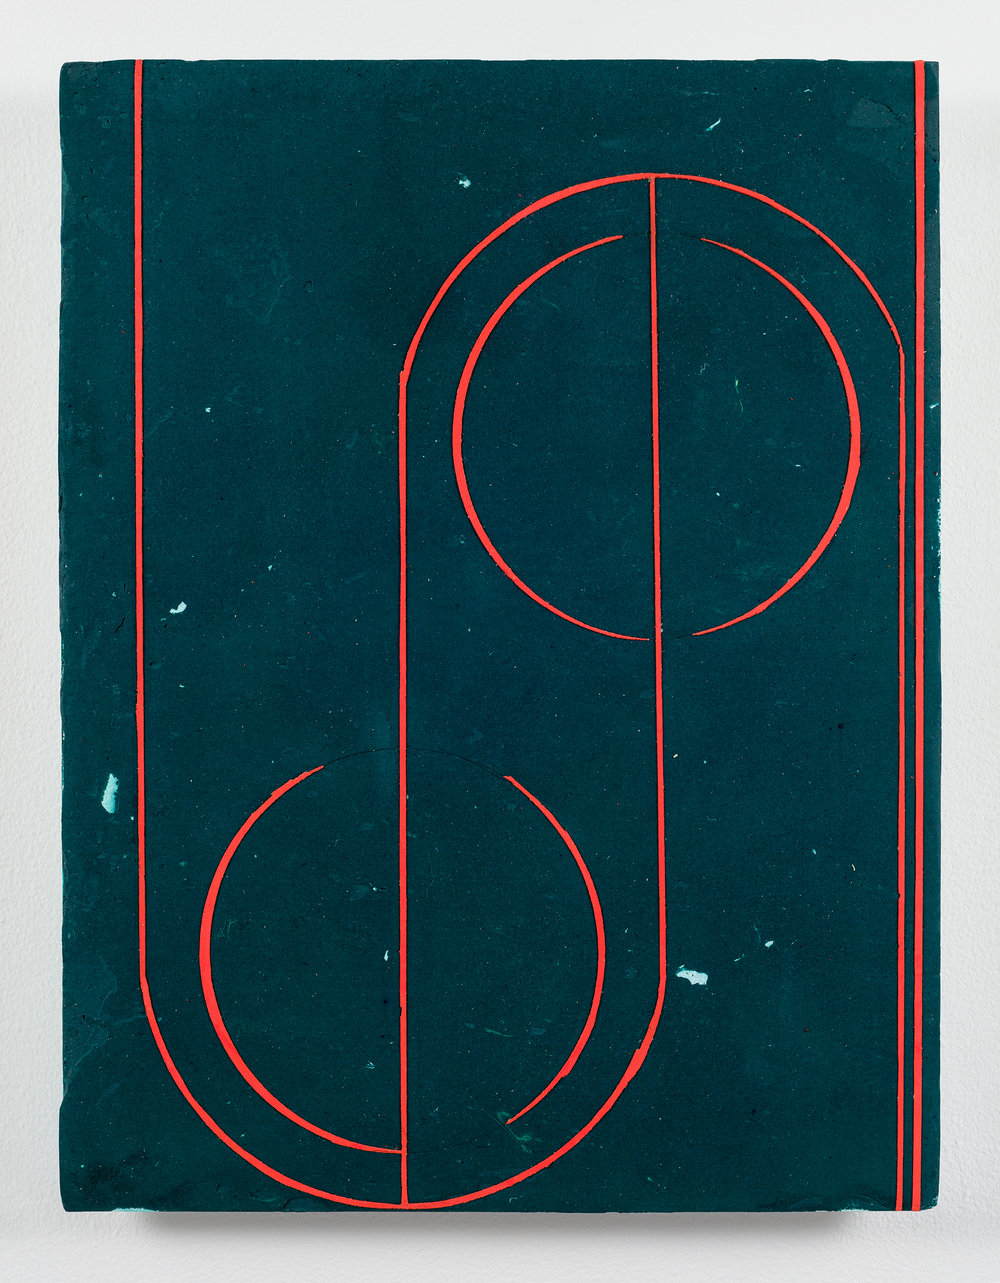 Nicolas Roggy,  Untitled (Green),  2013, acrylic medium and pigment on PVC, 17 x 12.75 in.